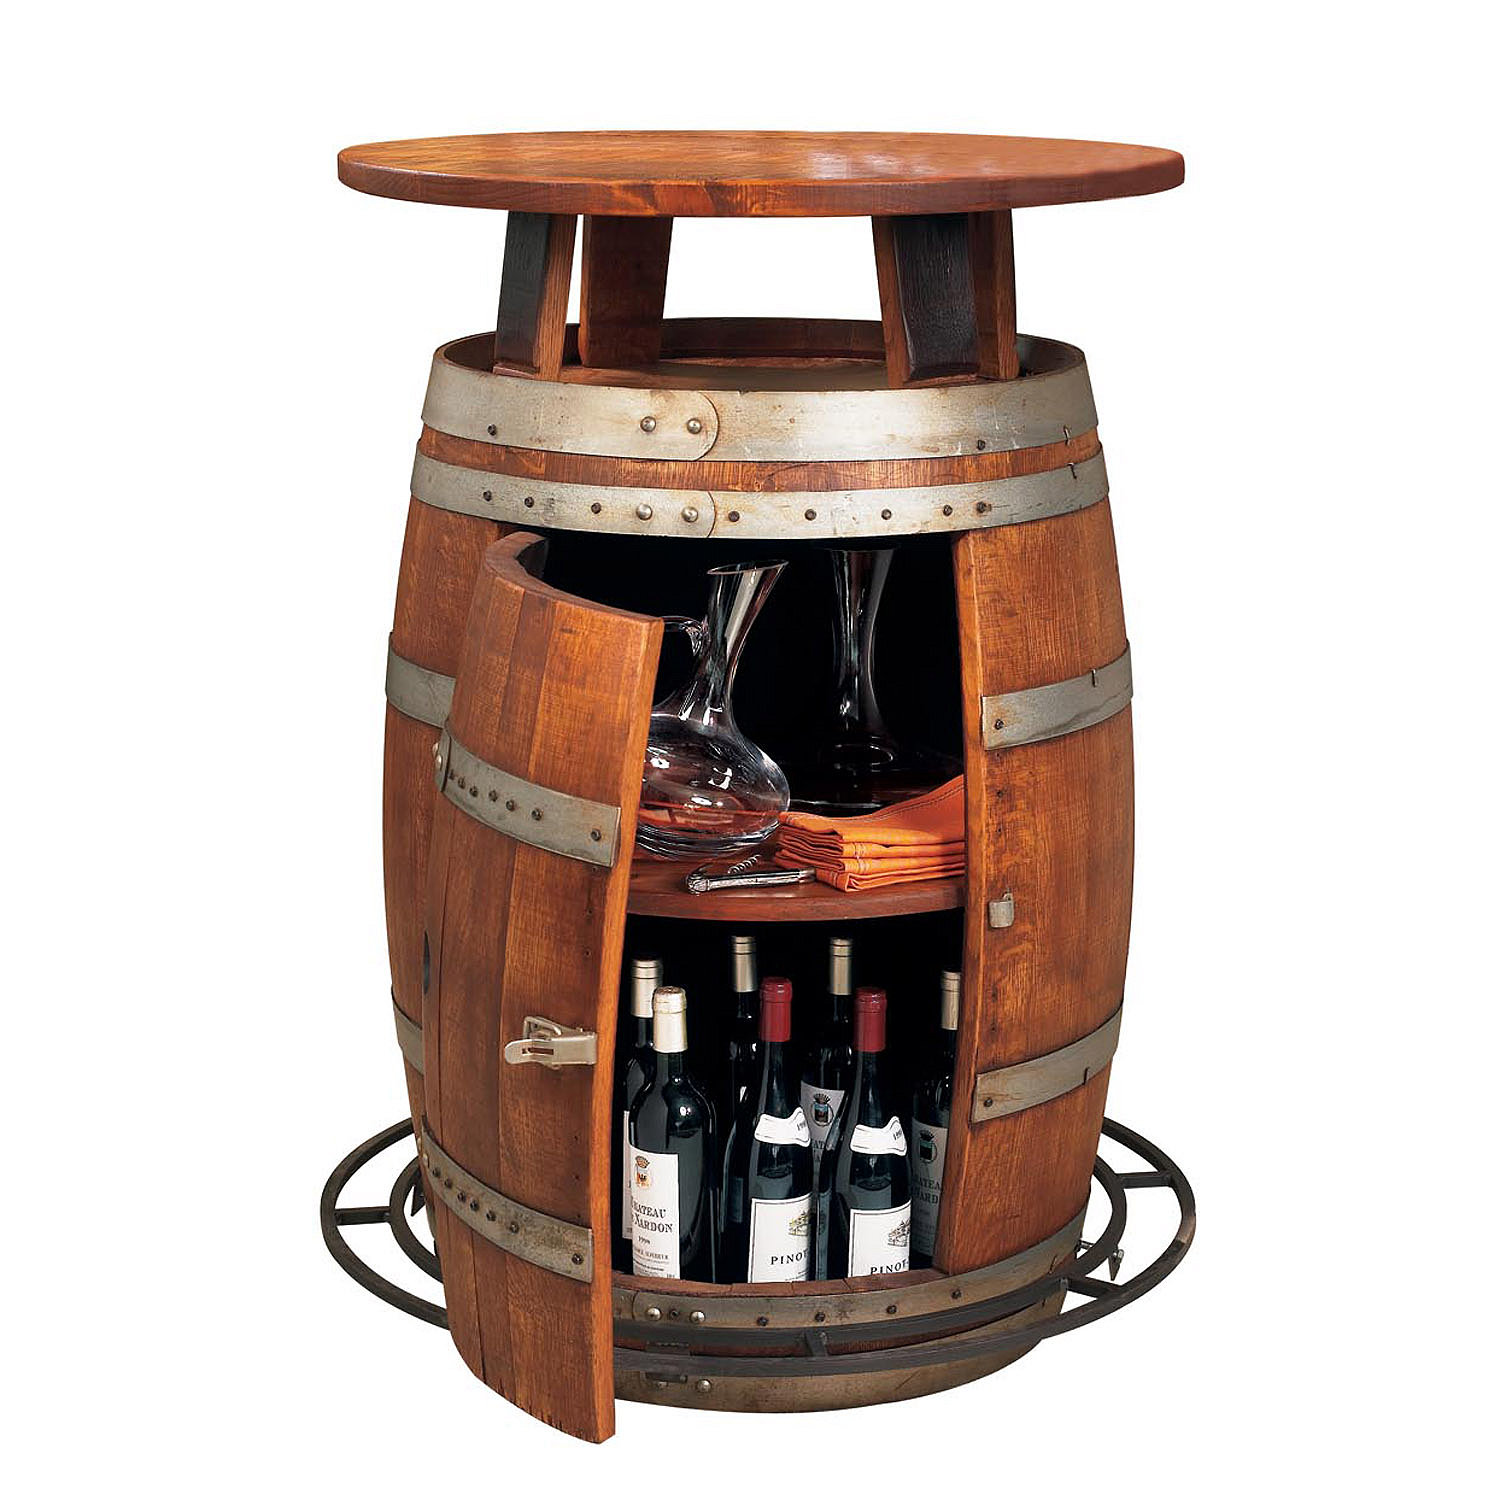 garden wine barrel furniture table ideas tables made from whiskey barrels racks out bistro accent full size dining chairs edmonton black glass coffee grill spatula narrow bedside